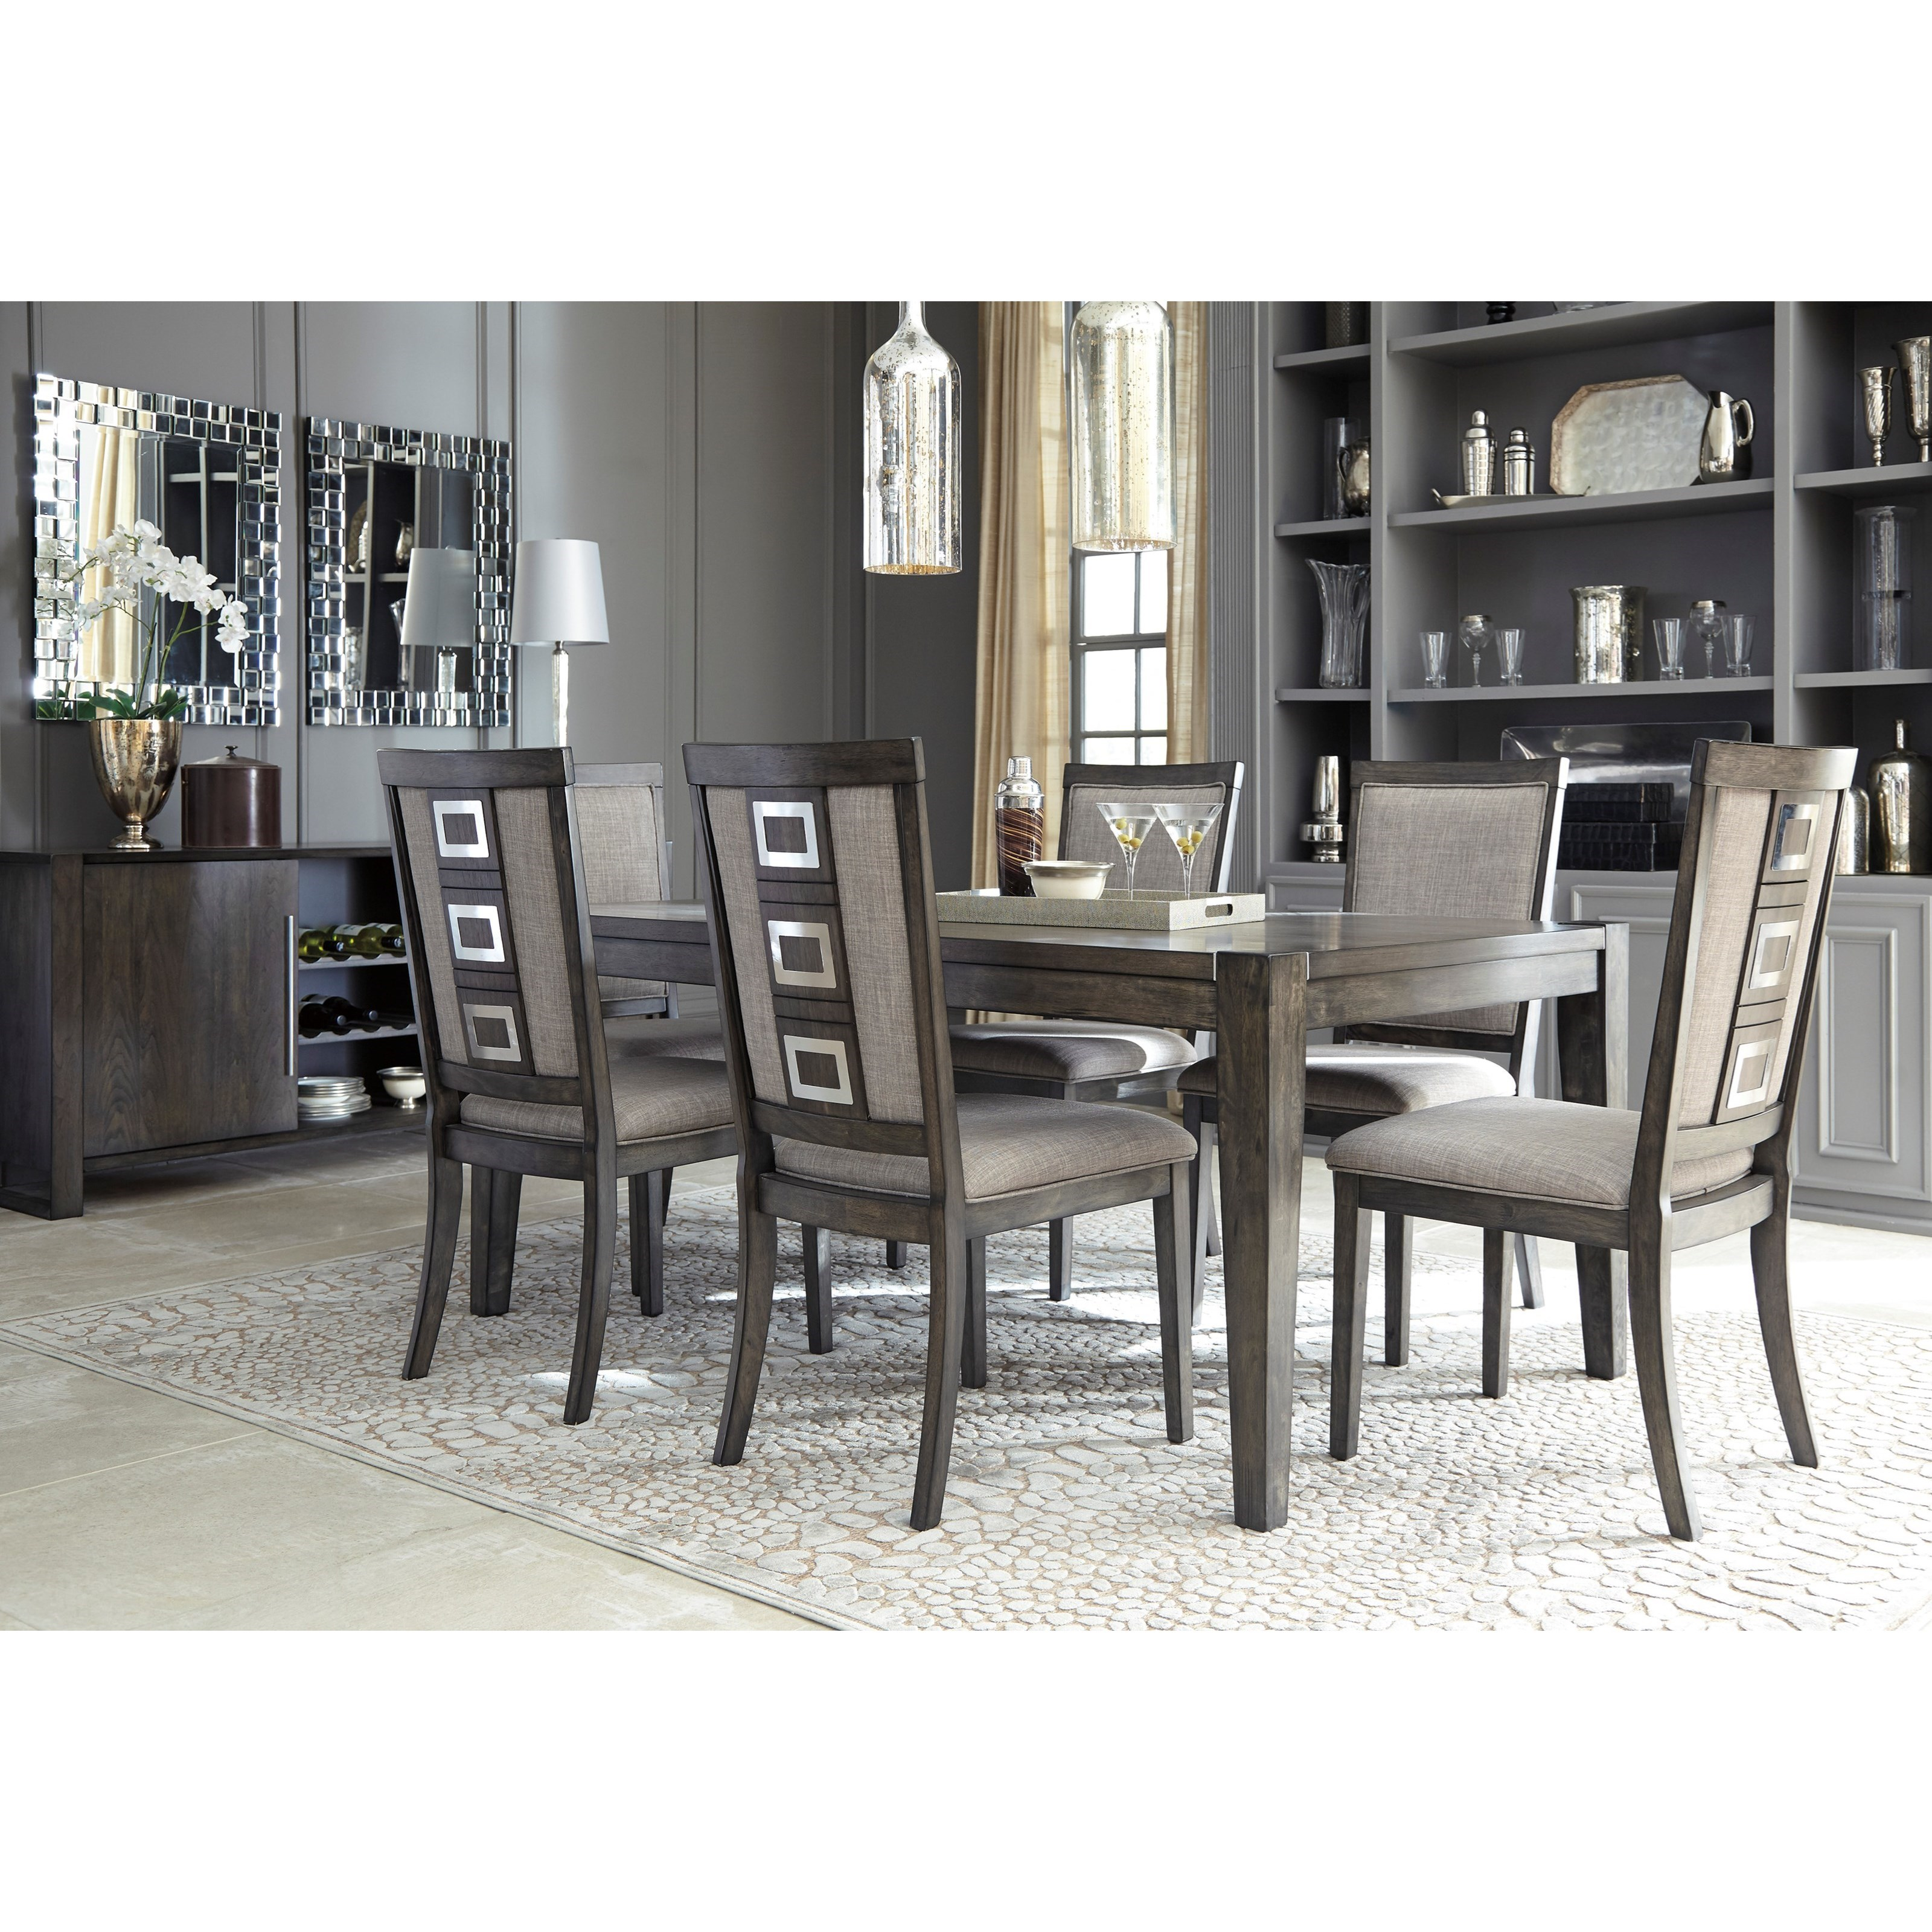 Signature Design By Ashley Chadoni Formal Dining Room Group Suburban Furnit